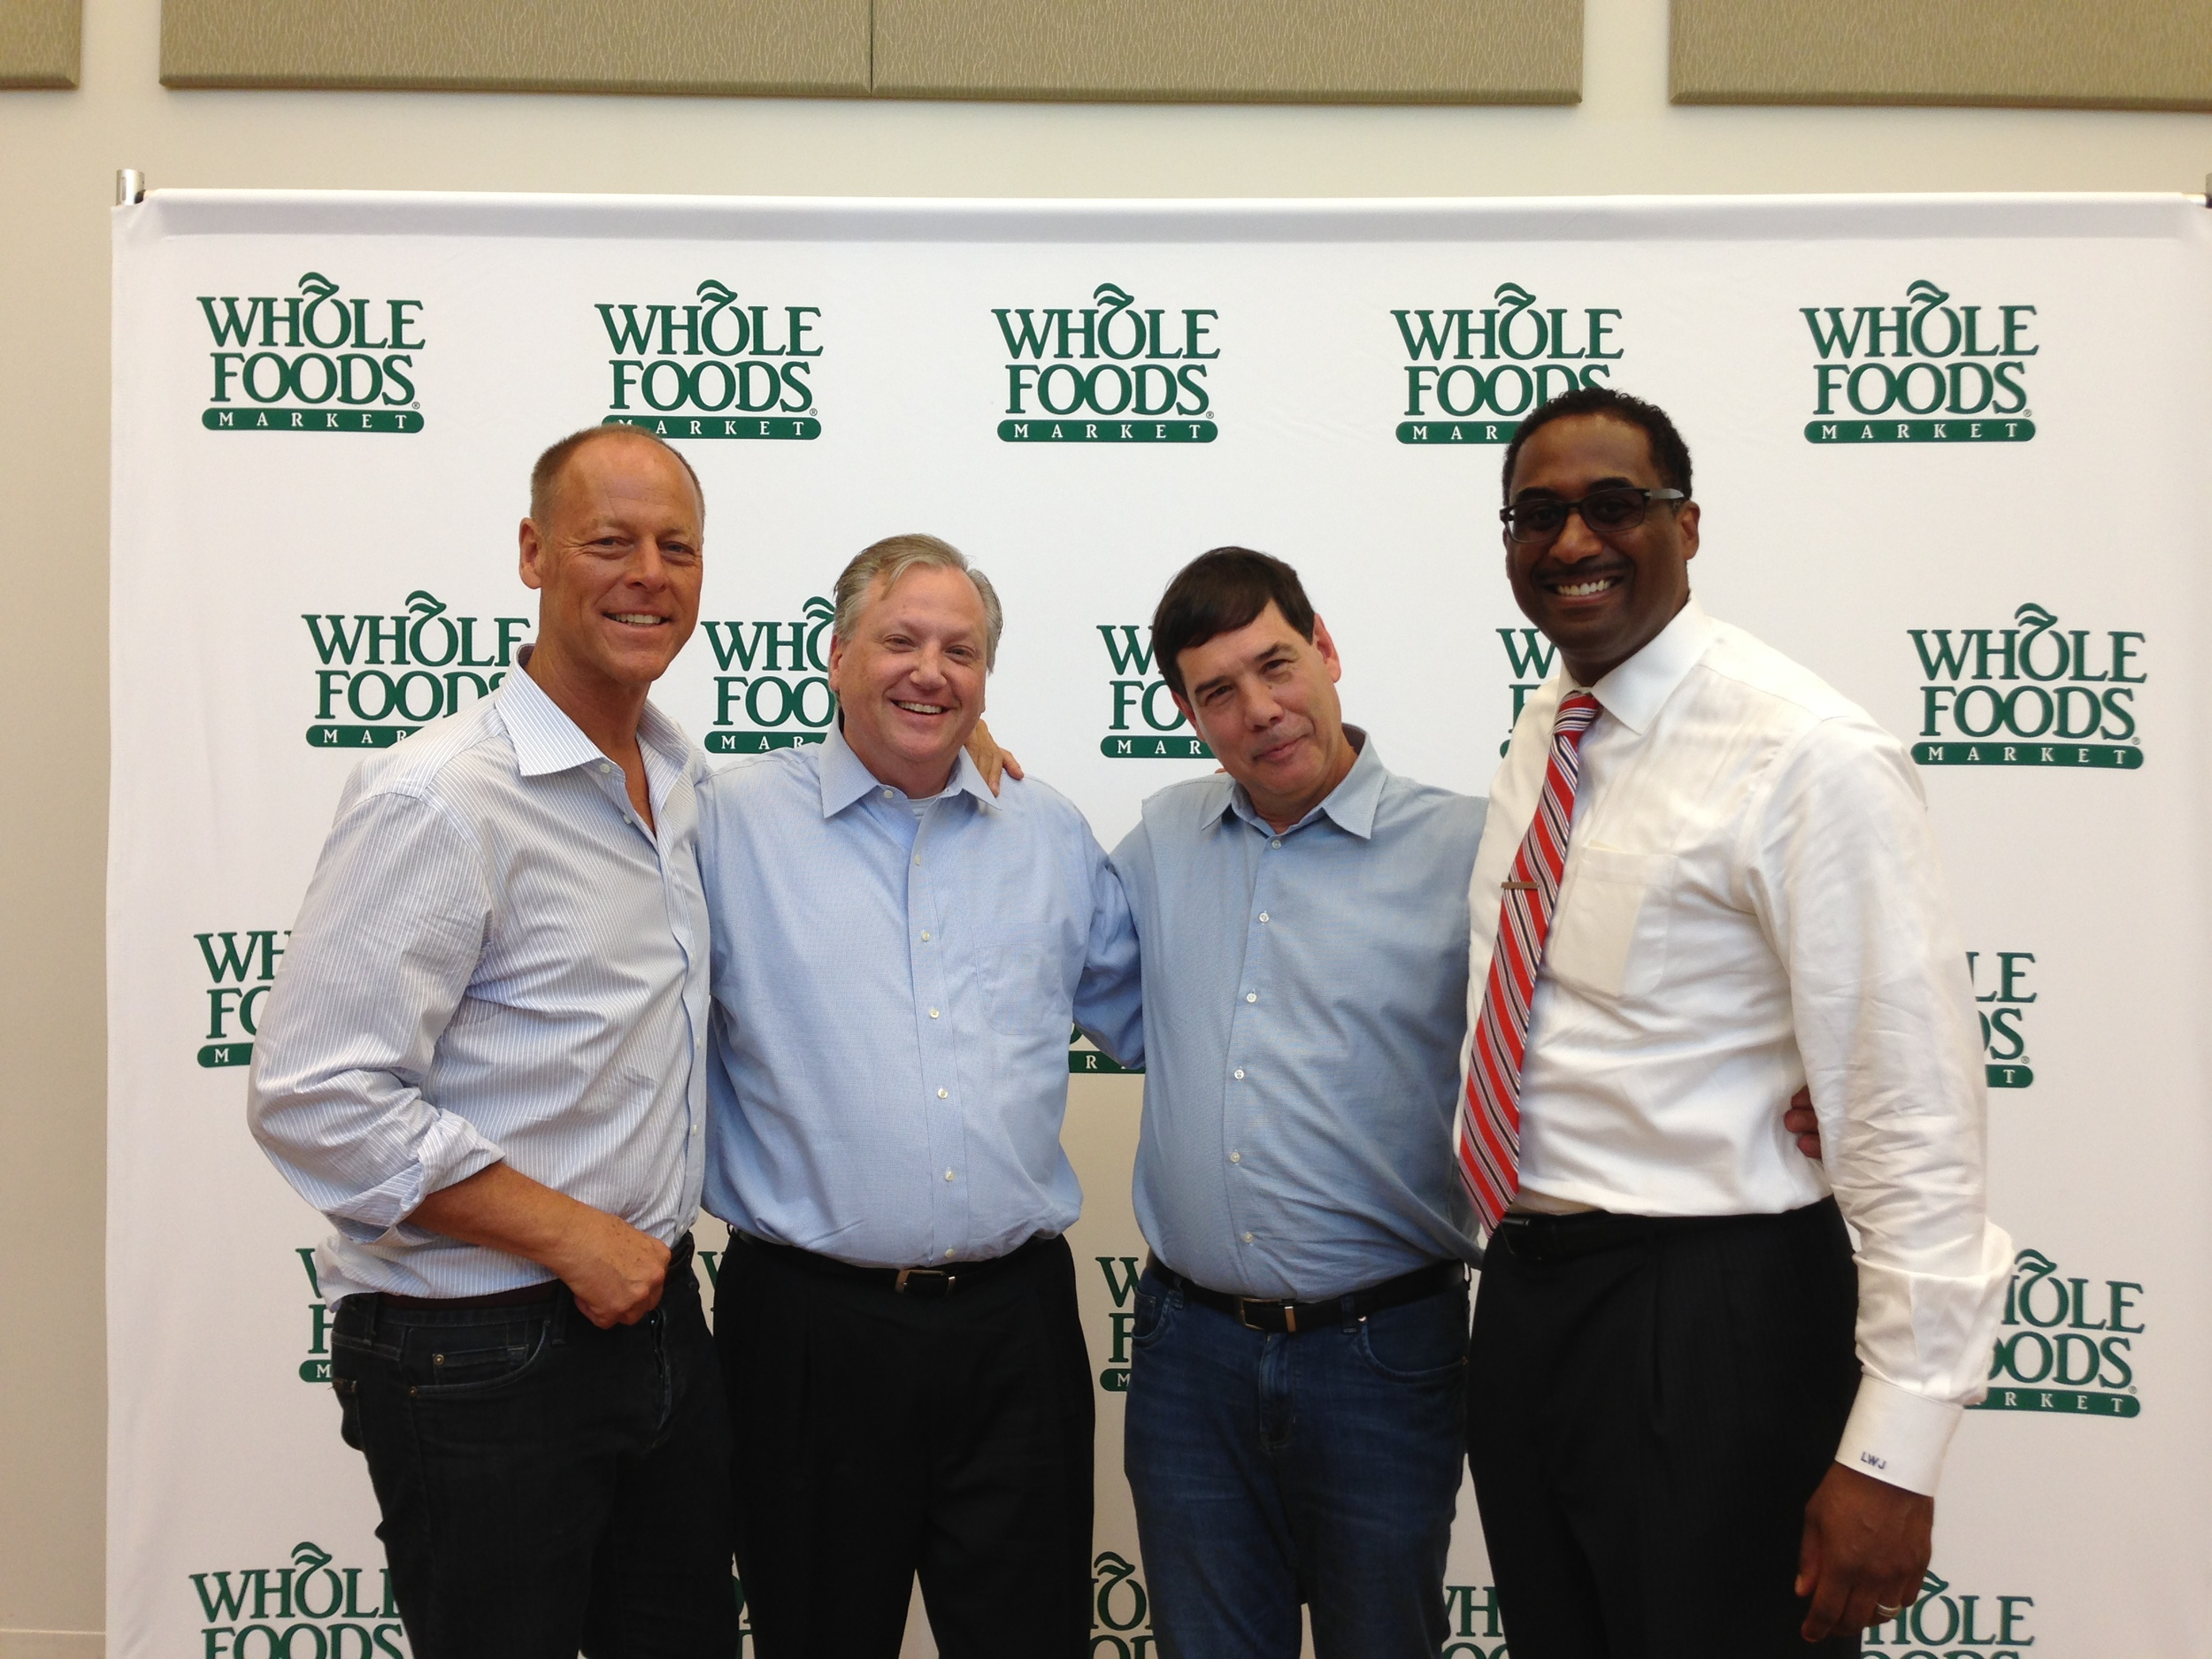 From left to right: Walter Robb (co-CEO, Whole Foods), Dave Doig (President, Chicago Neighborhood Initiatives), Michael Bashaw (Midwest Regional President, Whole Foods), and Leon Walker (Manager, DL3).